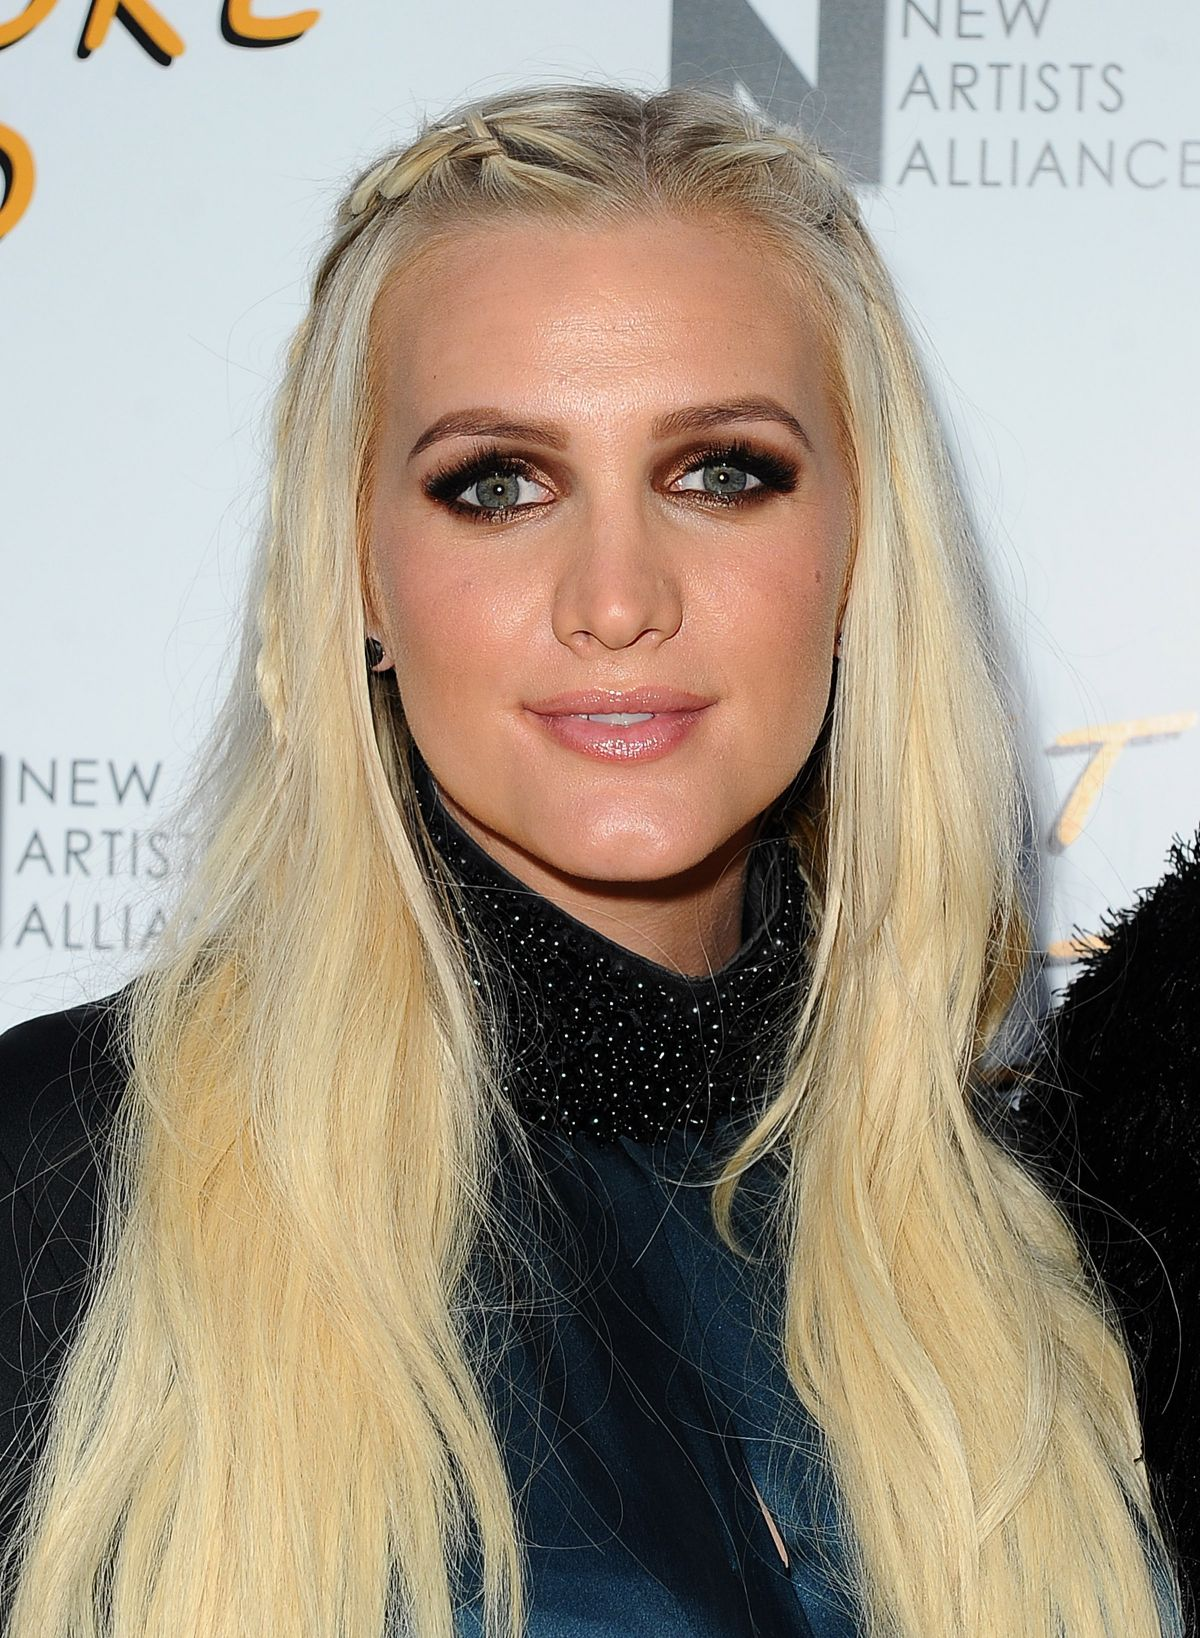 ASHLEE SIMPSON at Just Before I Go Premiere in Hollywood ... Ashlee Simpson